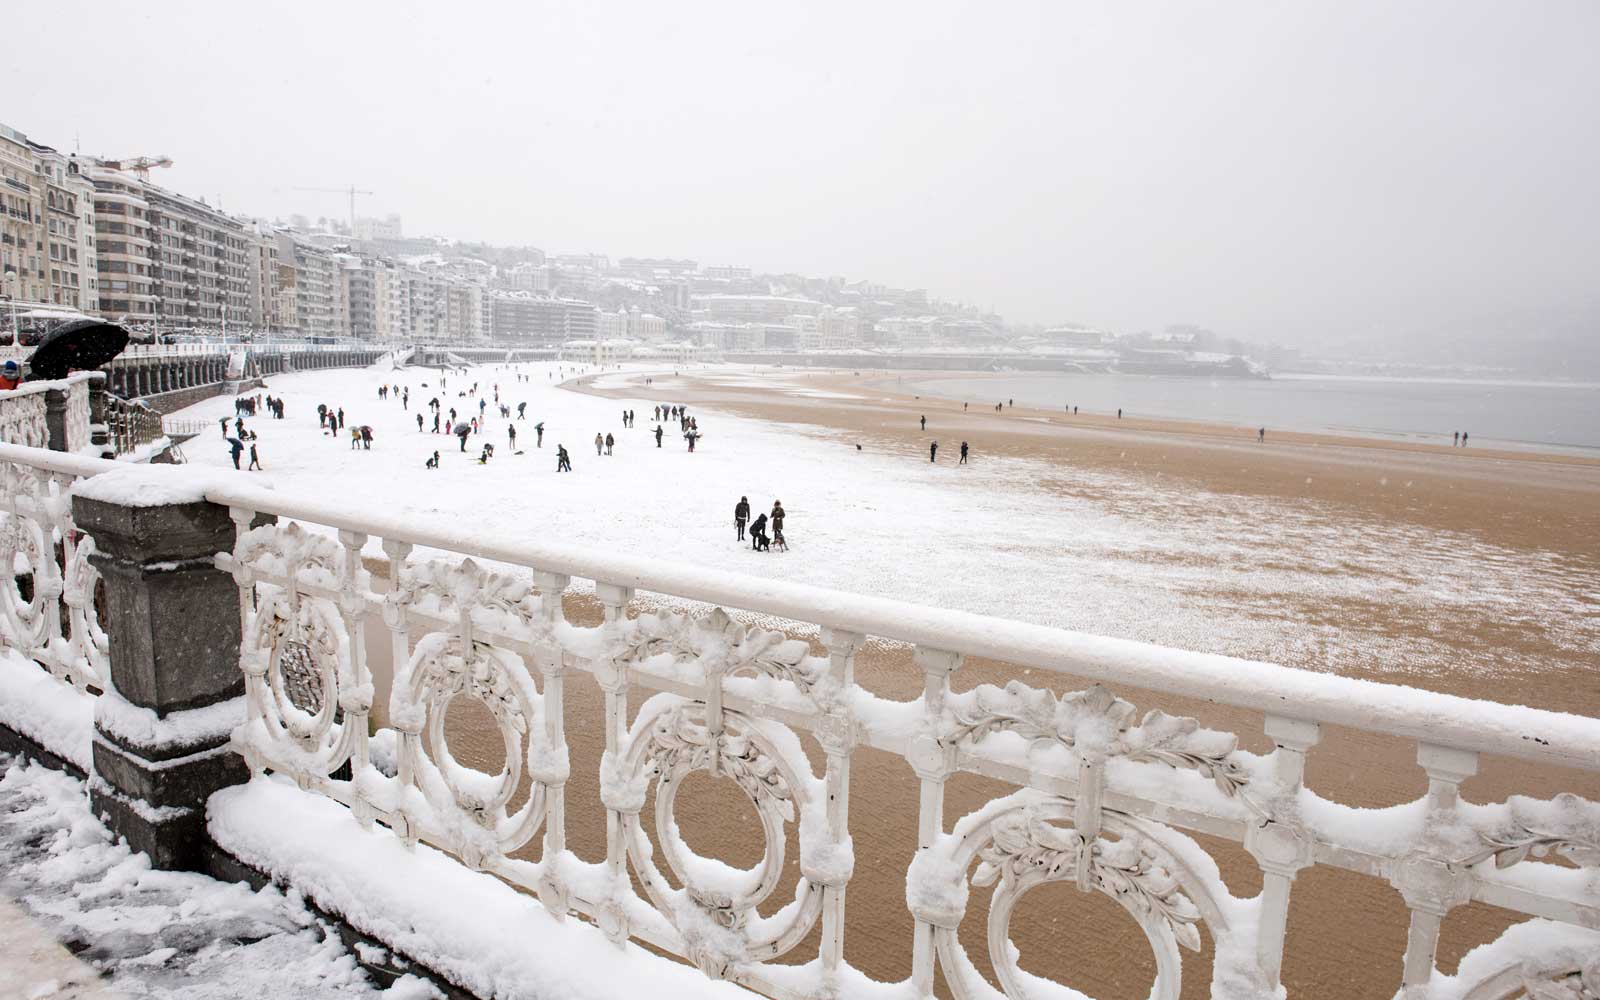 Freezing temperatures, wind and snow in San Sebastian